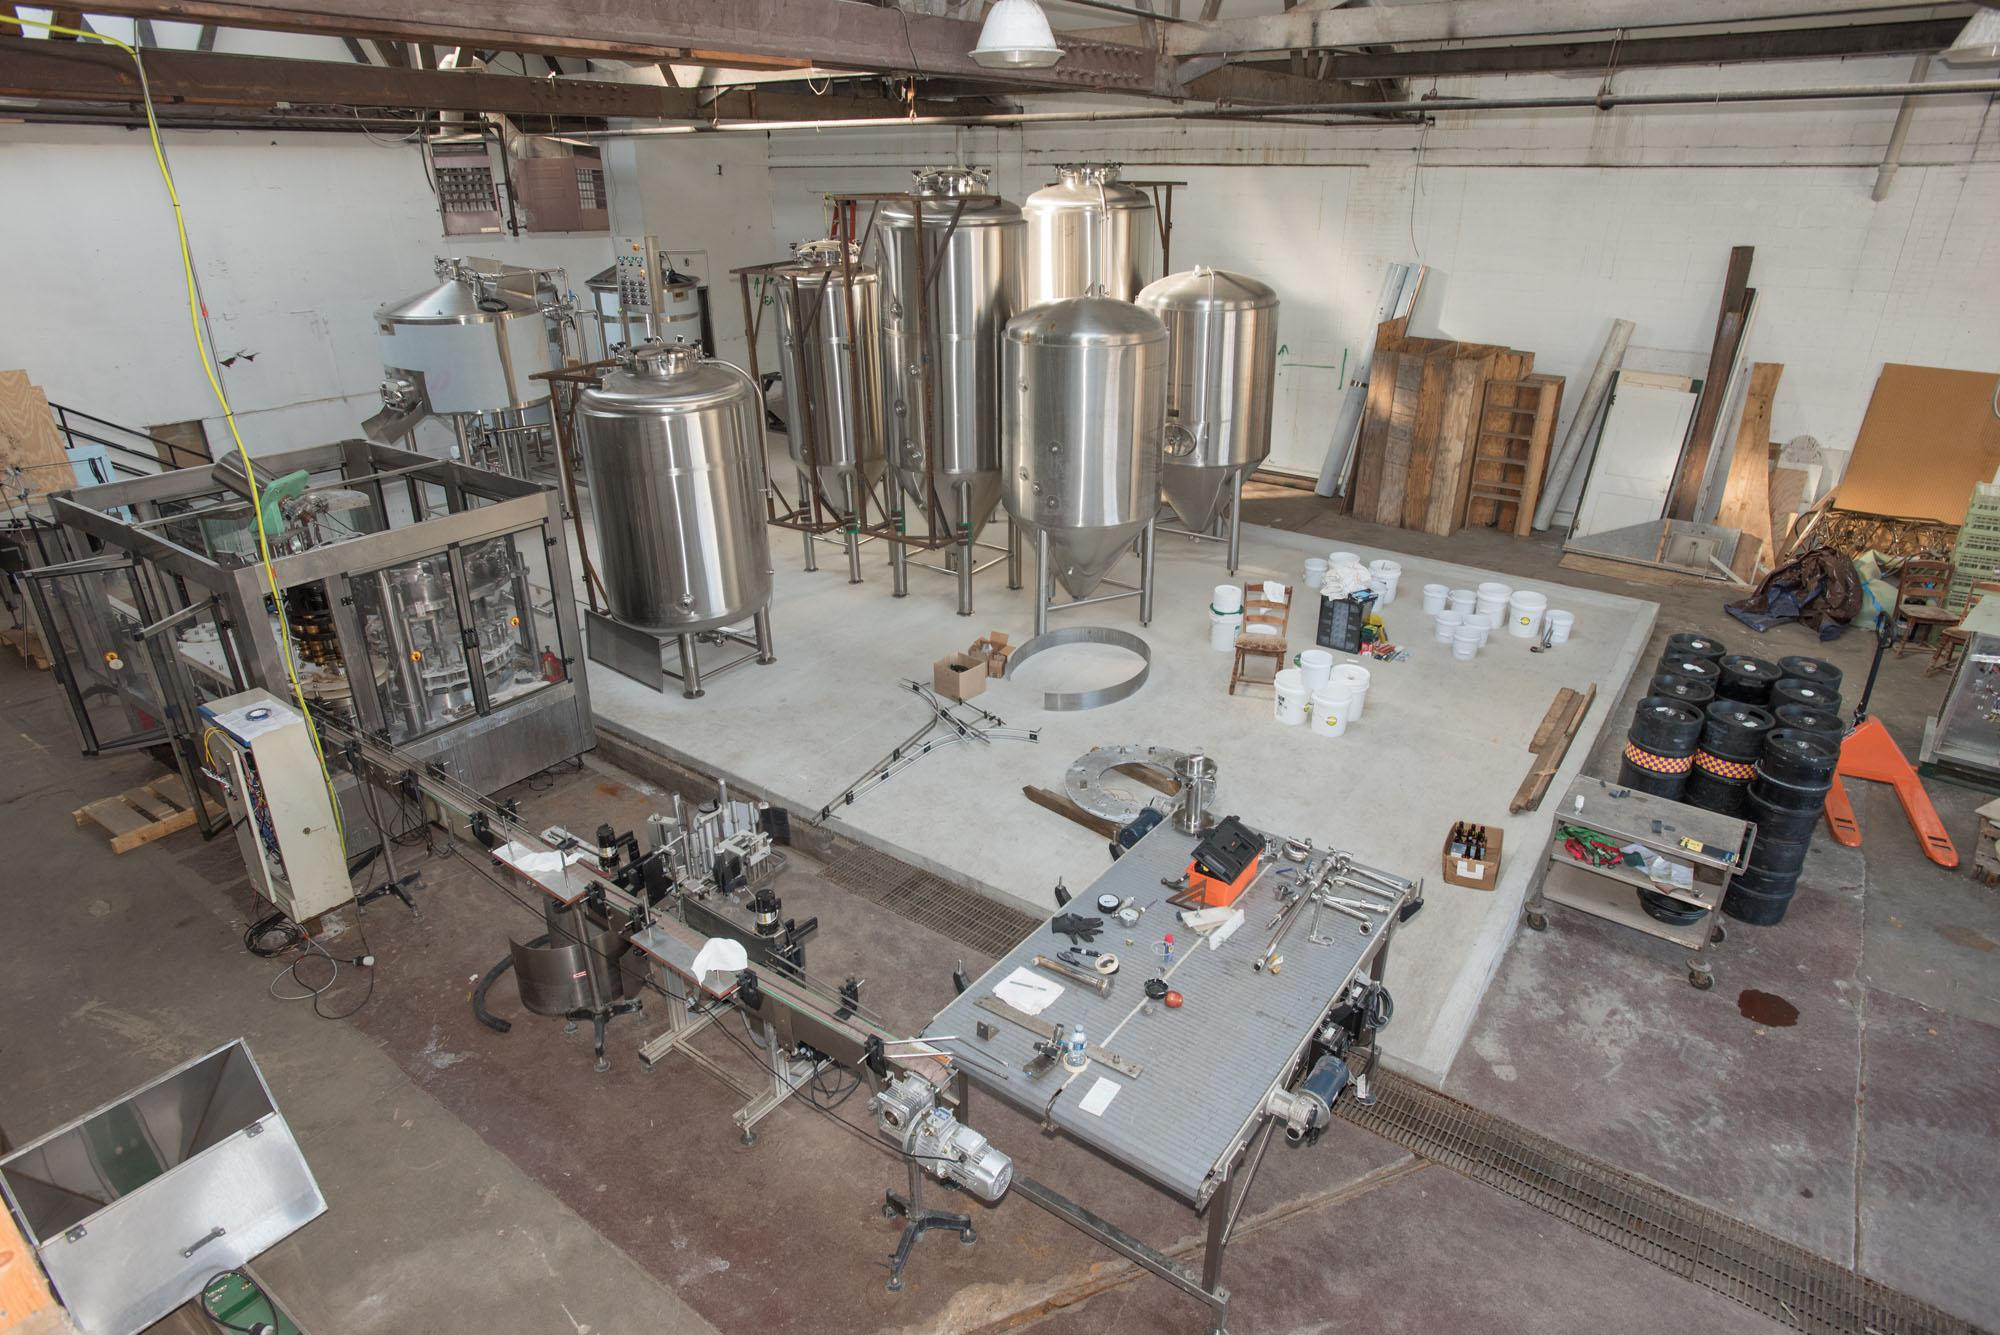 Blind+Pig+Brewery+in+Champaign+is+working+on+finishing+it%27s+new+production+facility+that+will+allow+it%27s+beer+to+be+bottled+and+sold+outside+of+the+brew-pub.